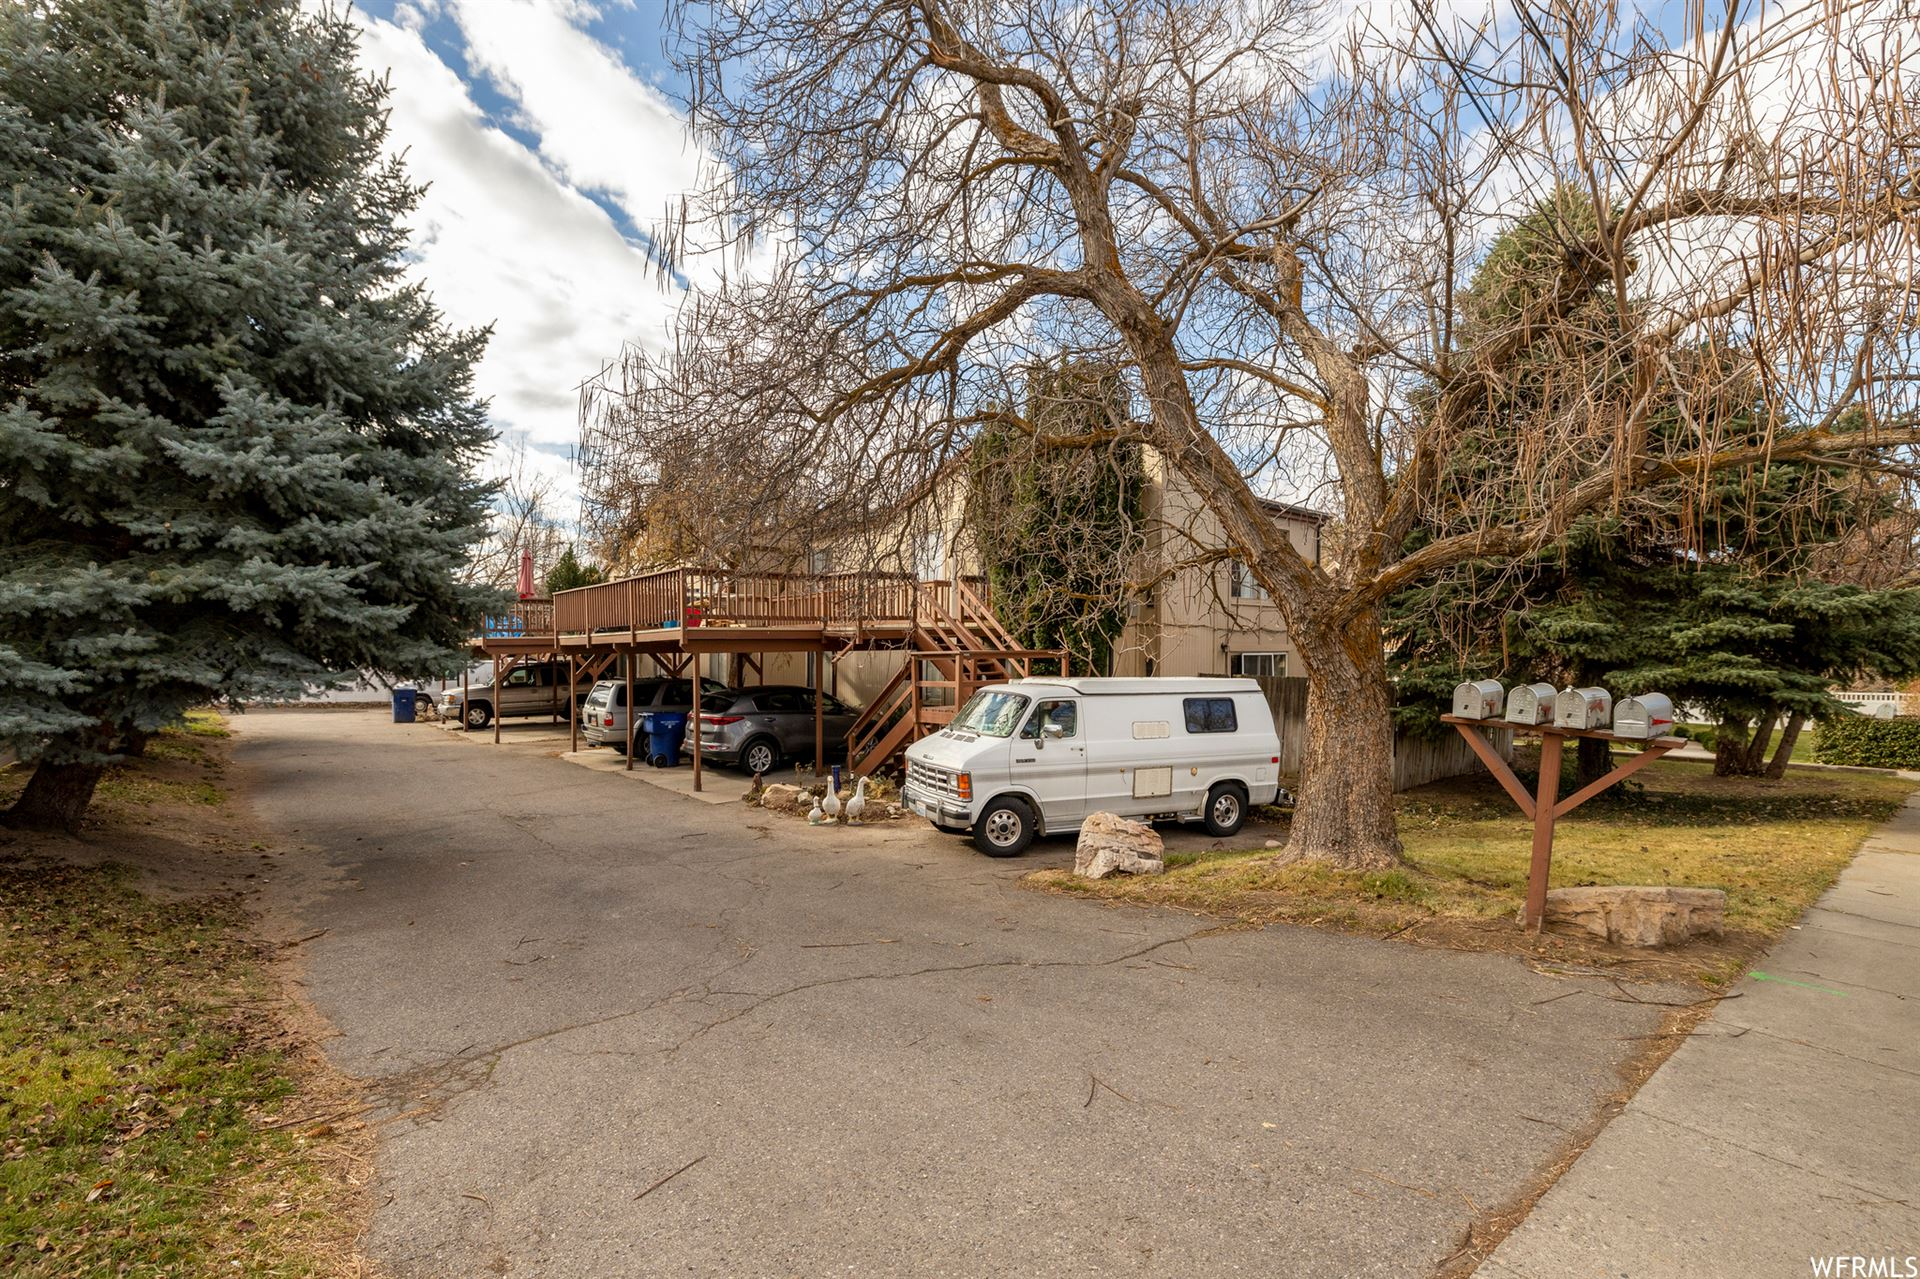 Photo of 2224 E CLAYBOURNE AVE, Salt Lake City, UT 84109 (MLS # 1715332)